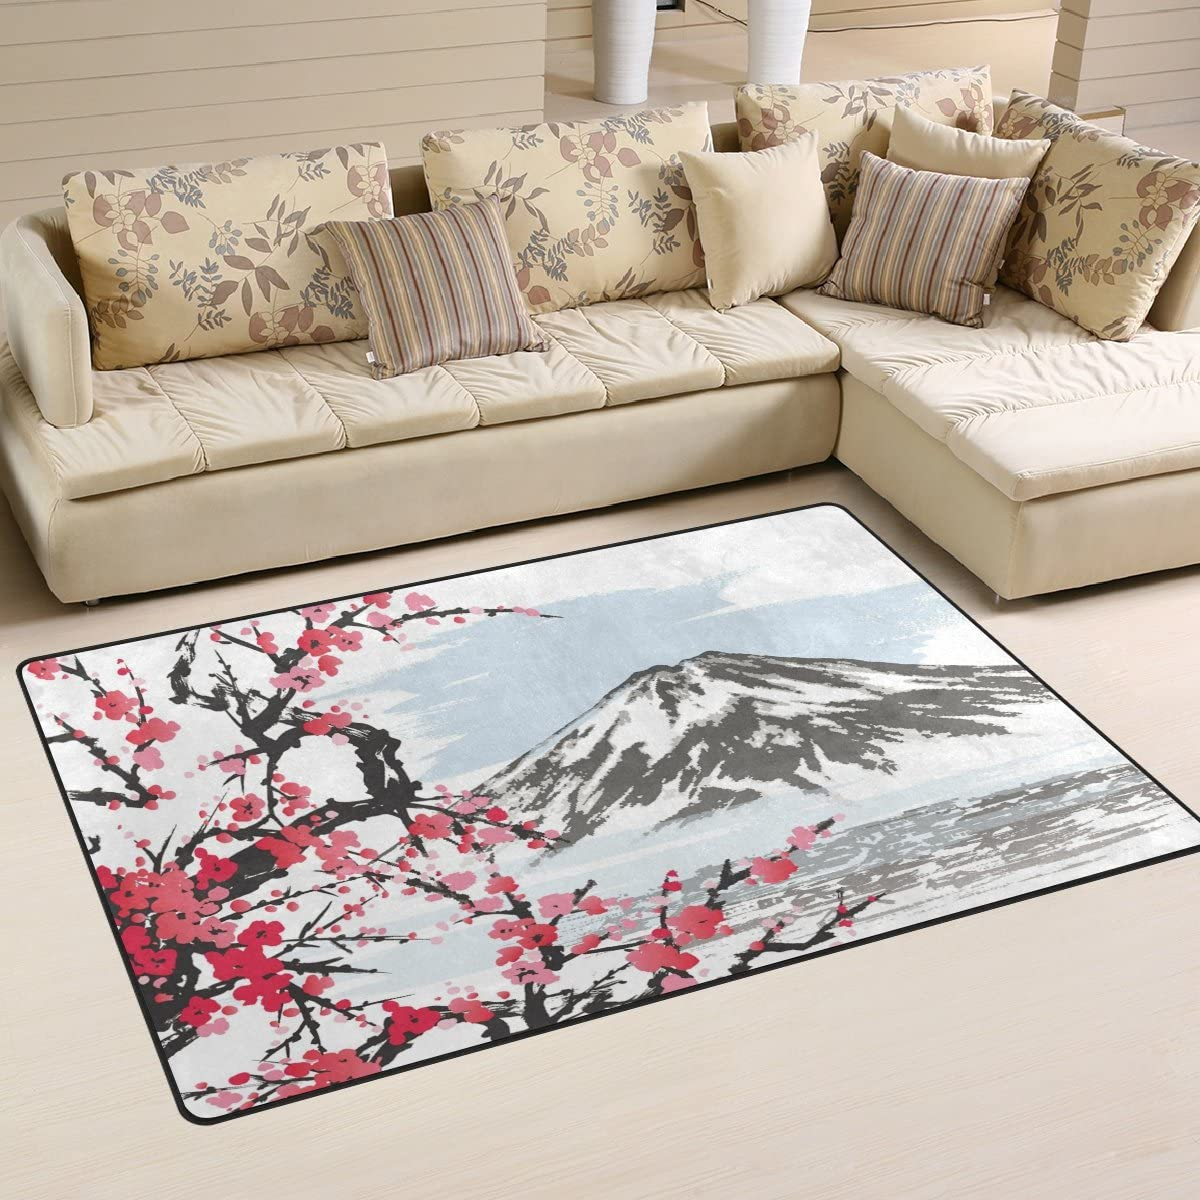 WOZO Mountain Fuji Spring Oriental Cherry Blossoms Area Rug Rugs Non-Slip Floor Mat Doormats Living Dining Room Bedroom Dorm 60 x 39 inches inches Home Decor